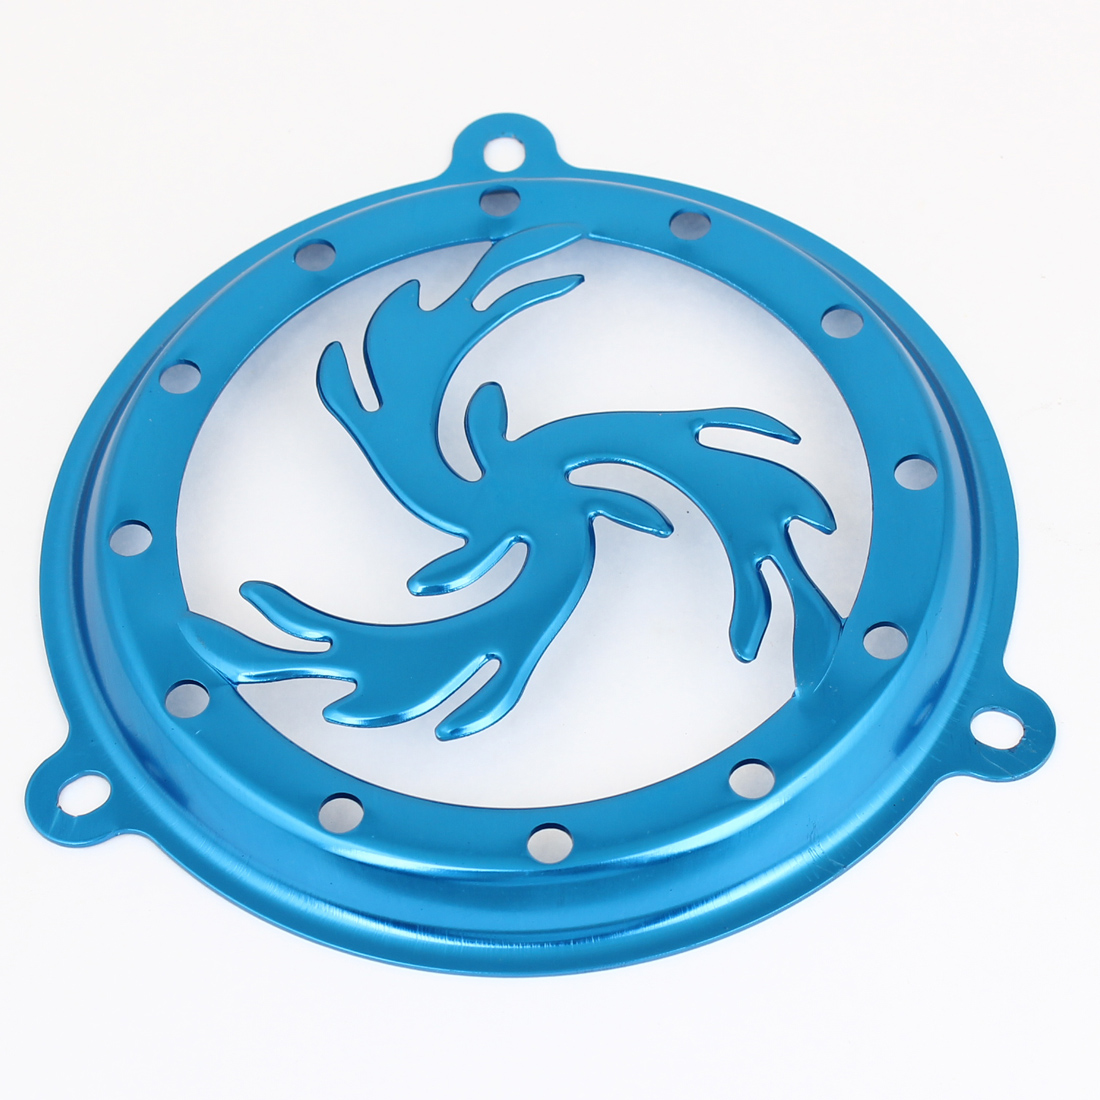 Autobike Motorcycle Aluminum Blue Circle Shaped Flame Fan Cover